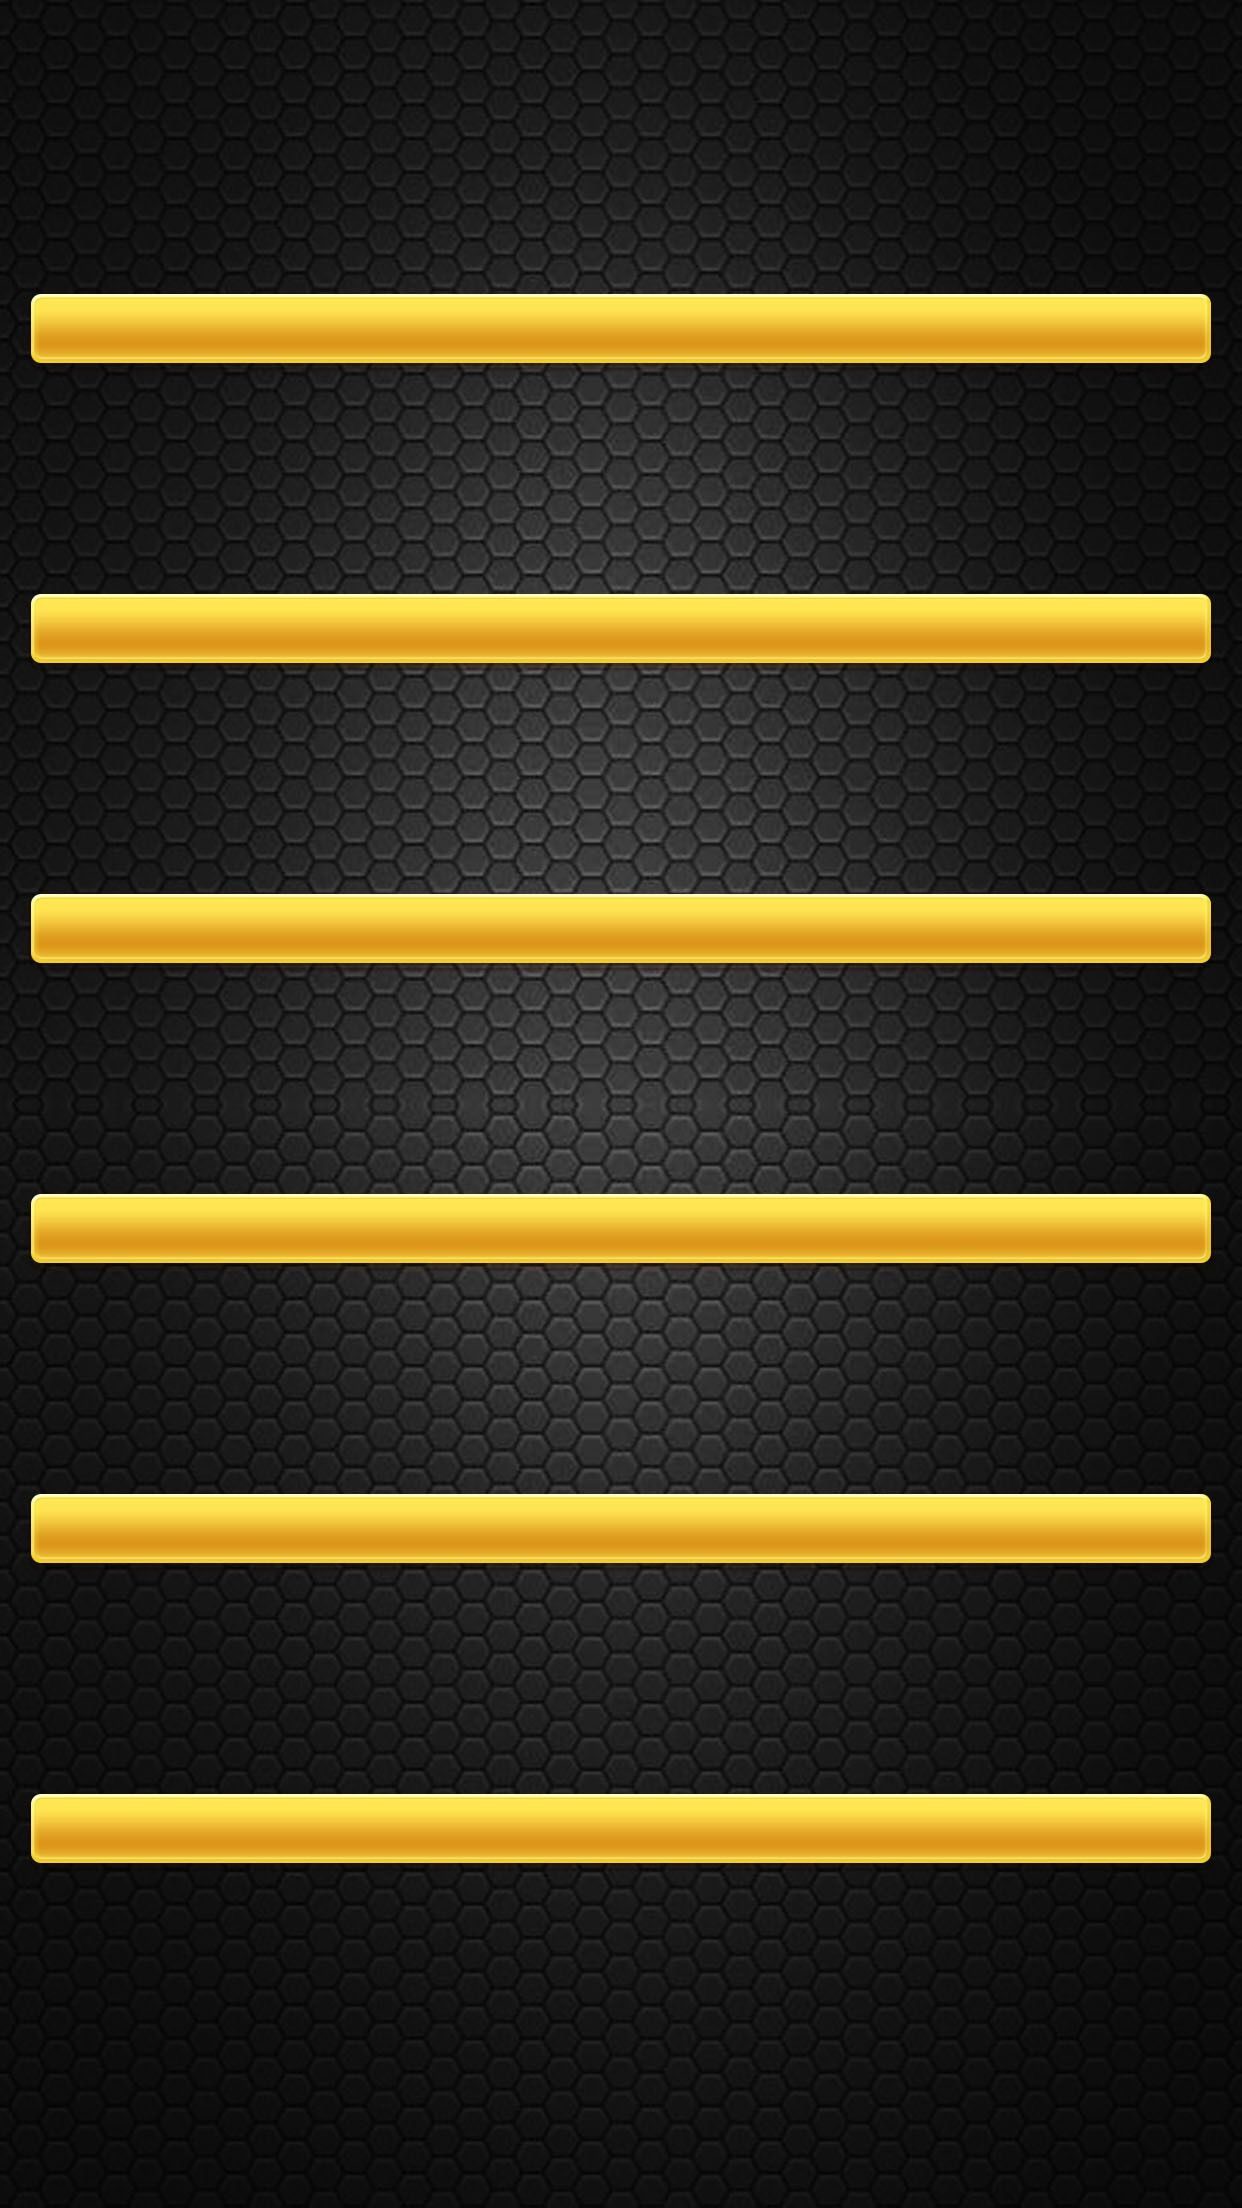 a†'a†'tap and get the free app shelves simple black yellow minimalistic hd iphone